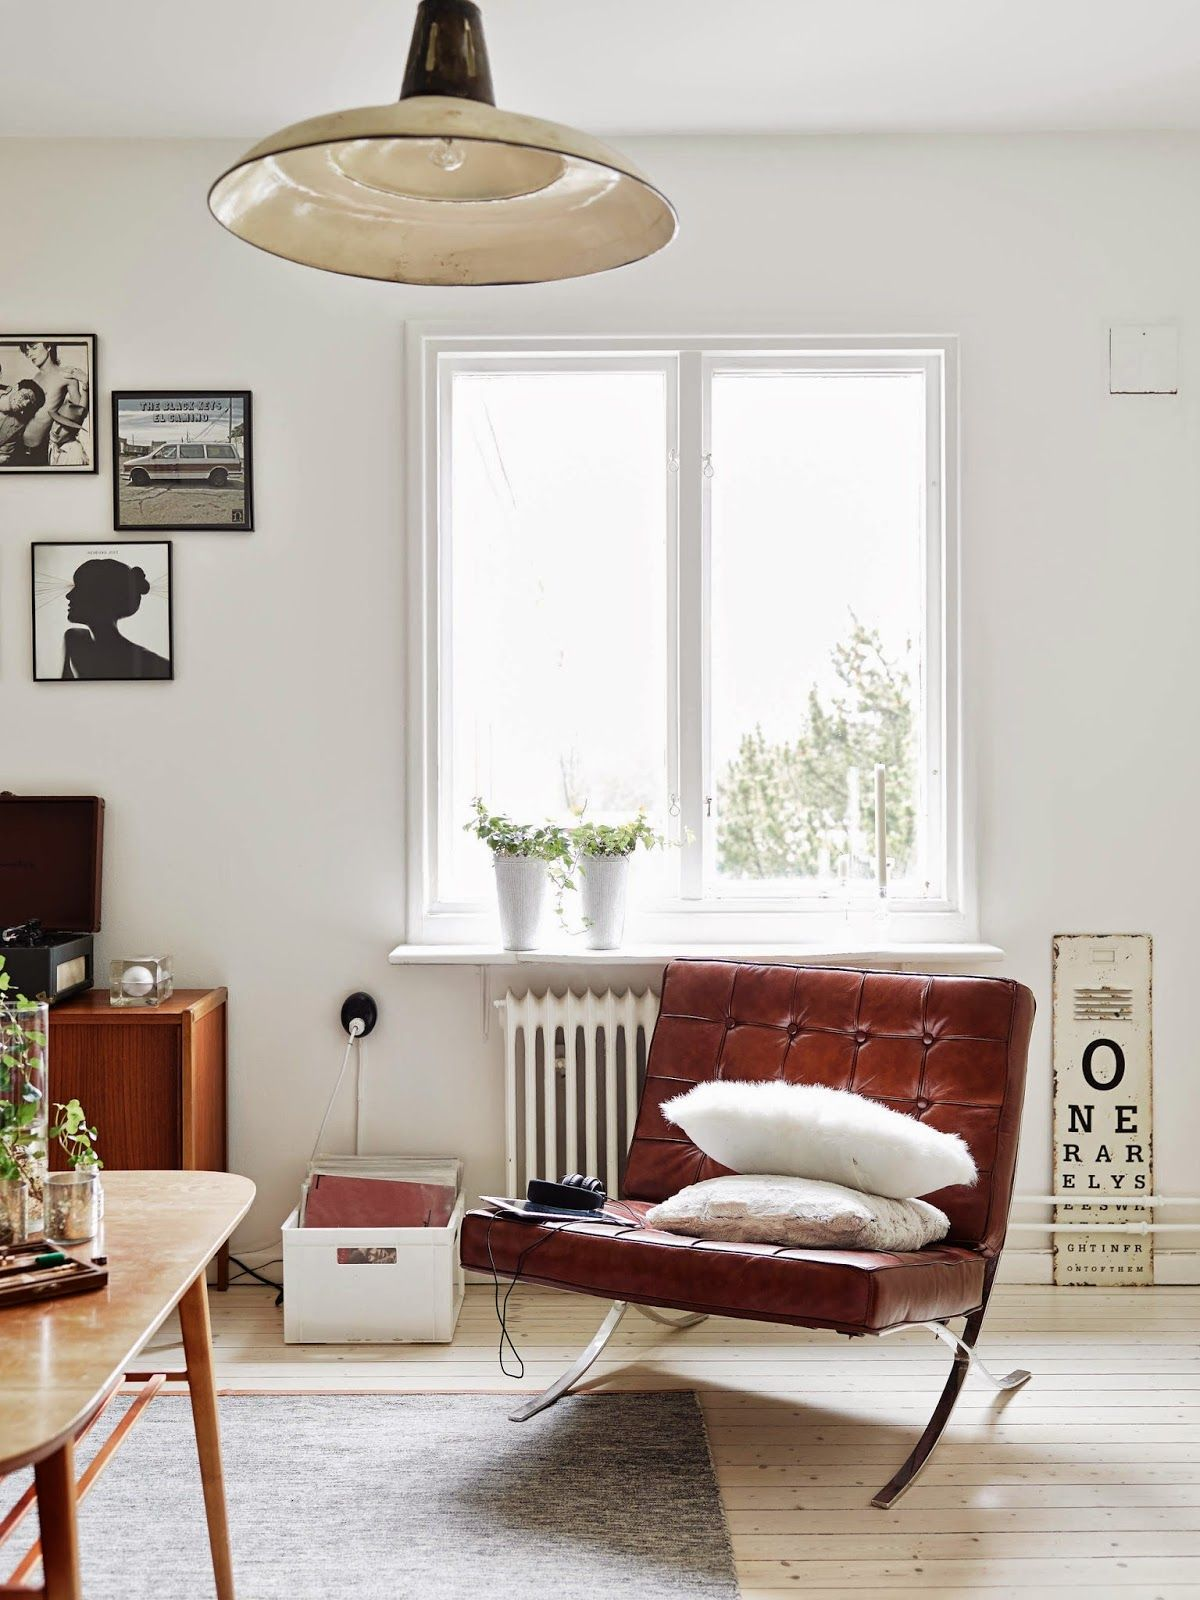 my scandinavian home: Monochrome and cognac in a vintage inspired ...